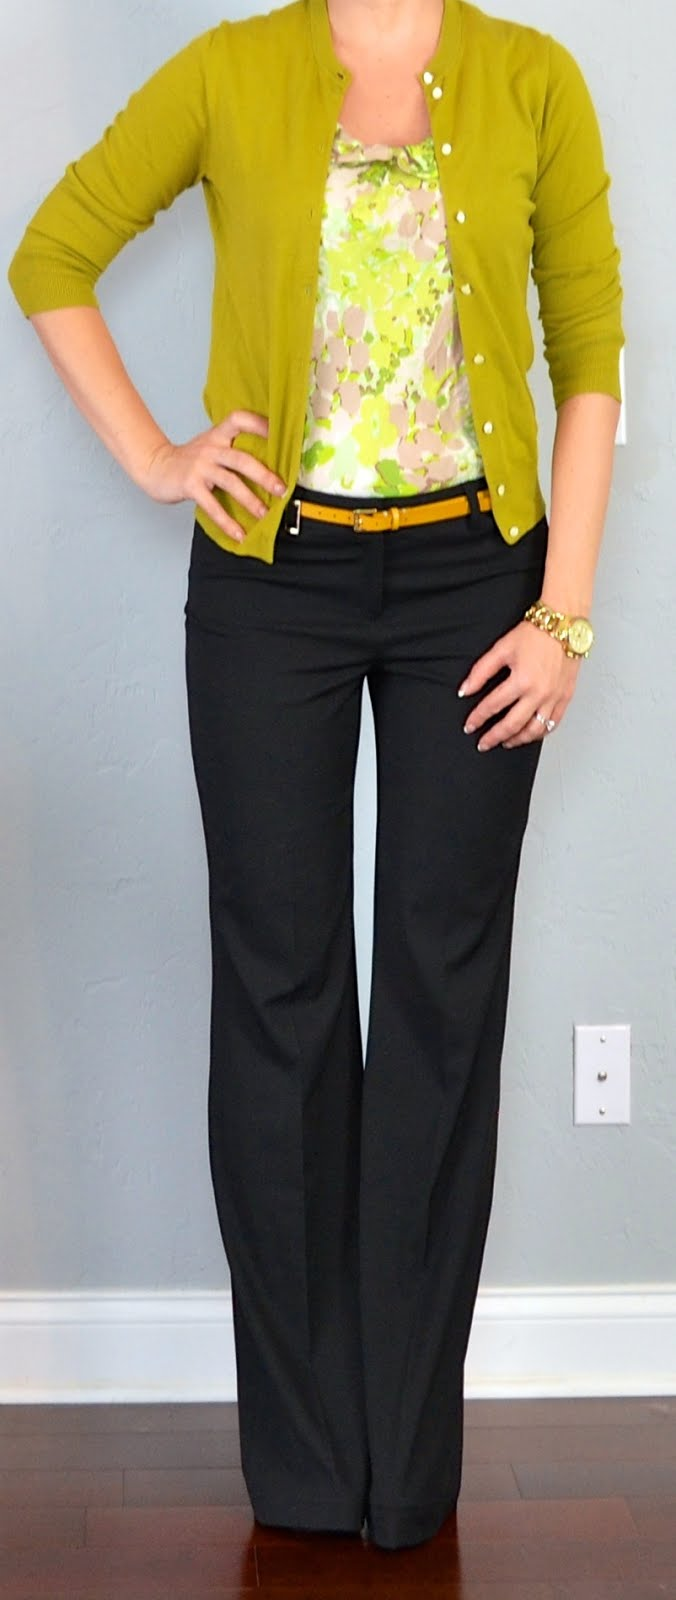 Outfit Post Green Floral Blouse Green/mustard Cardigan Black Pants Yellow Belt